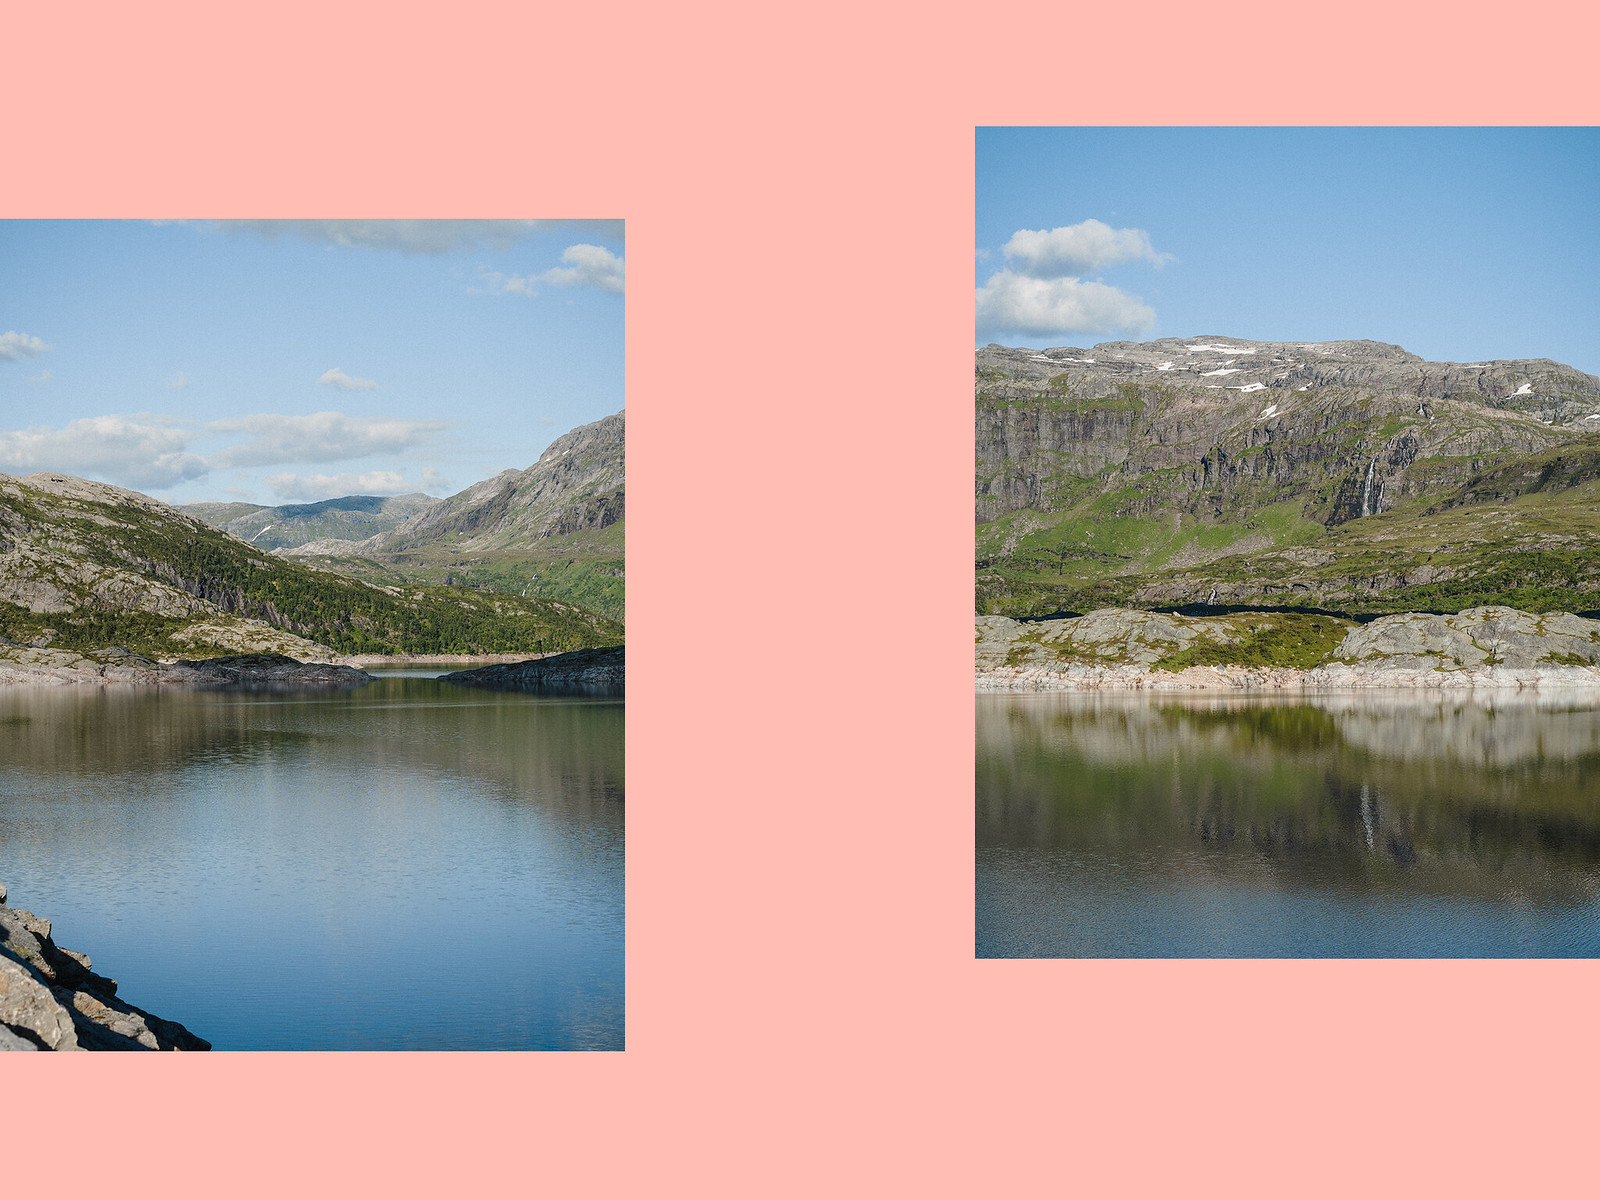 landscape diptych on pink background showing reservoir and mountain landscape